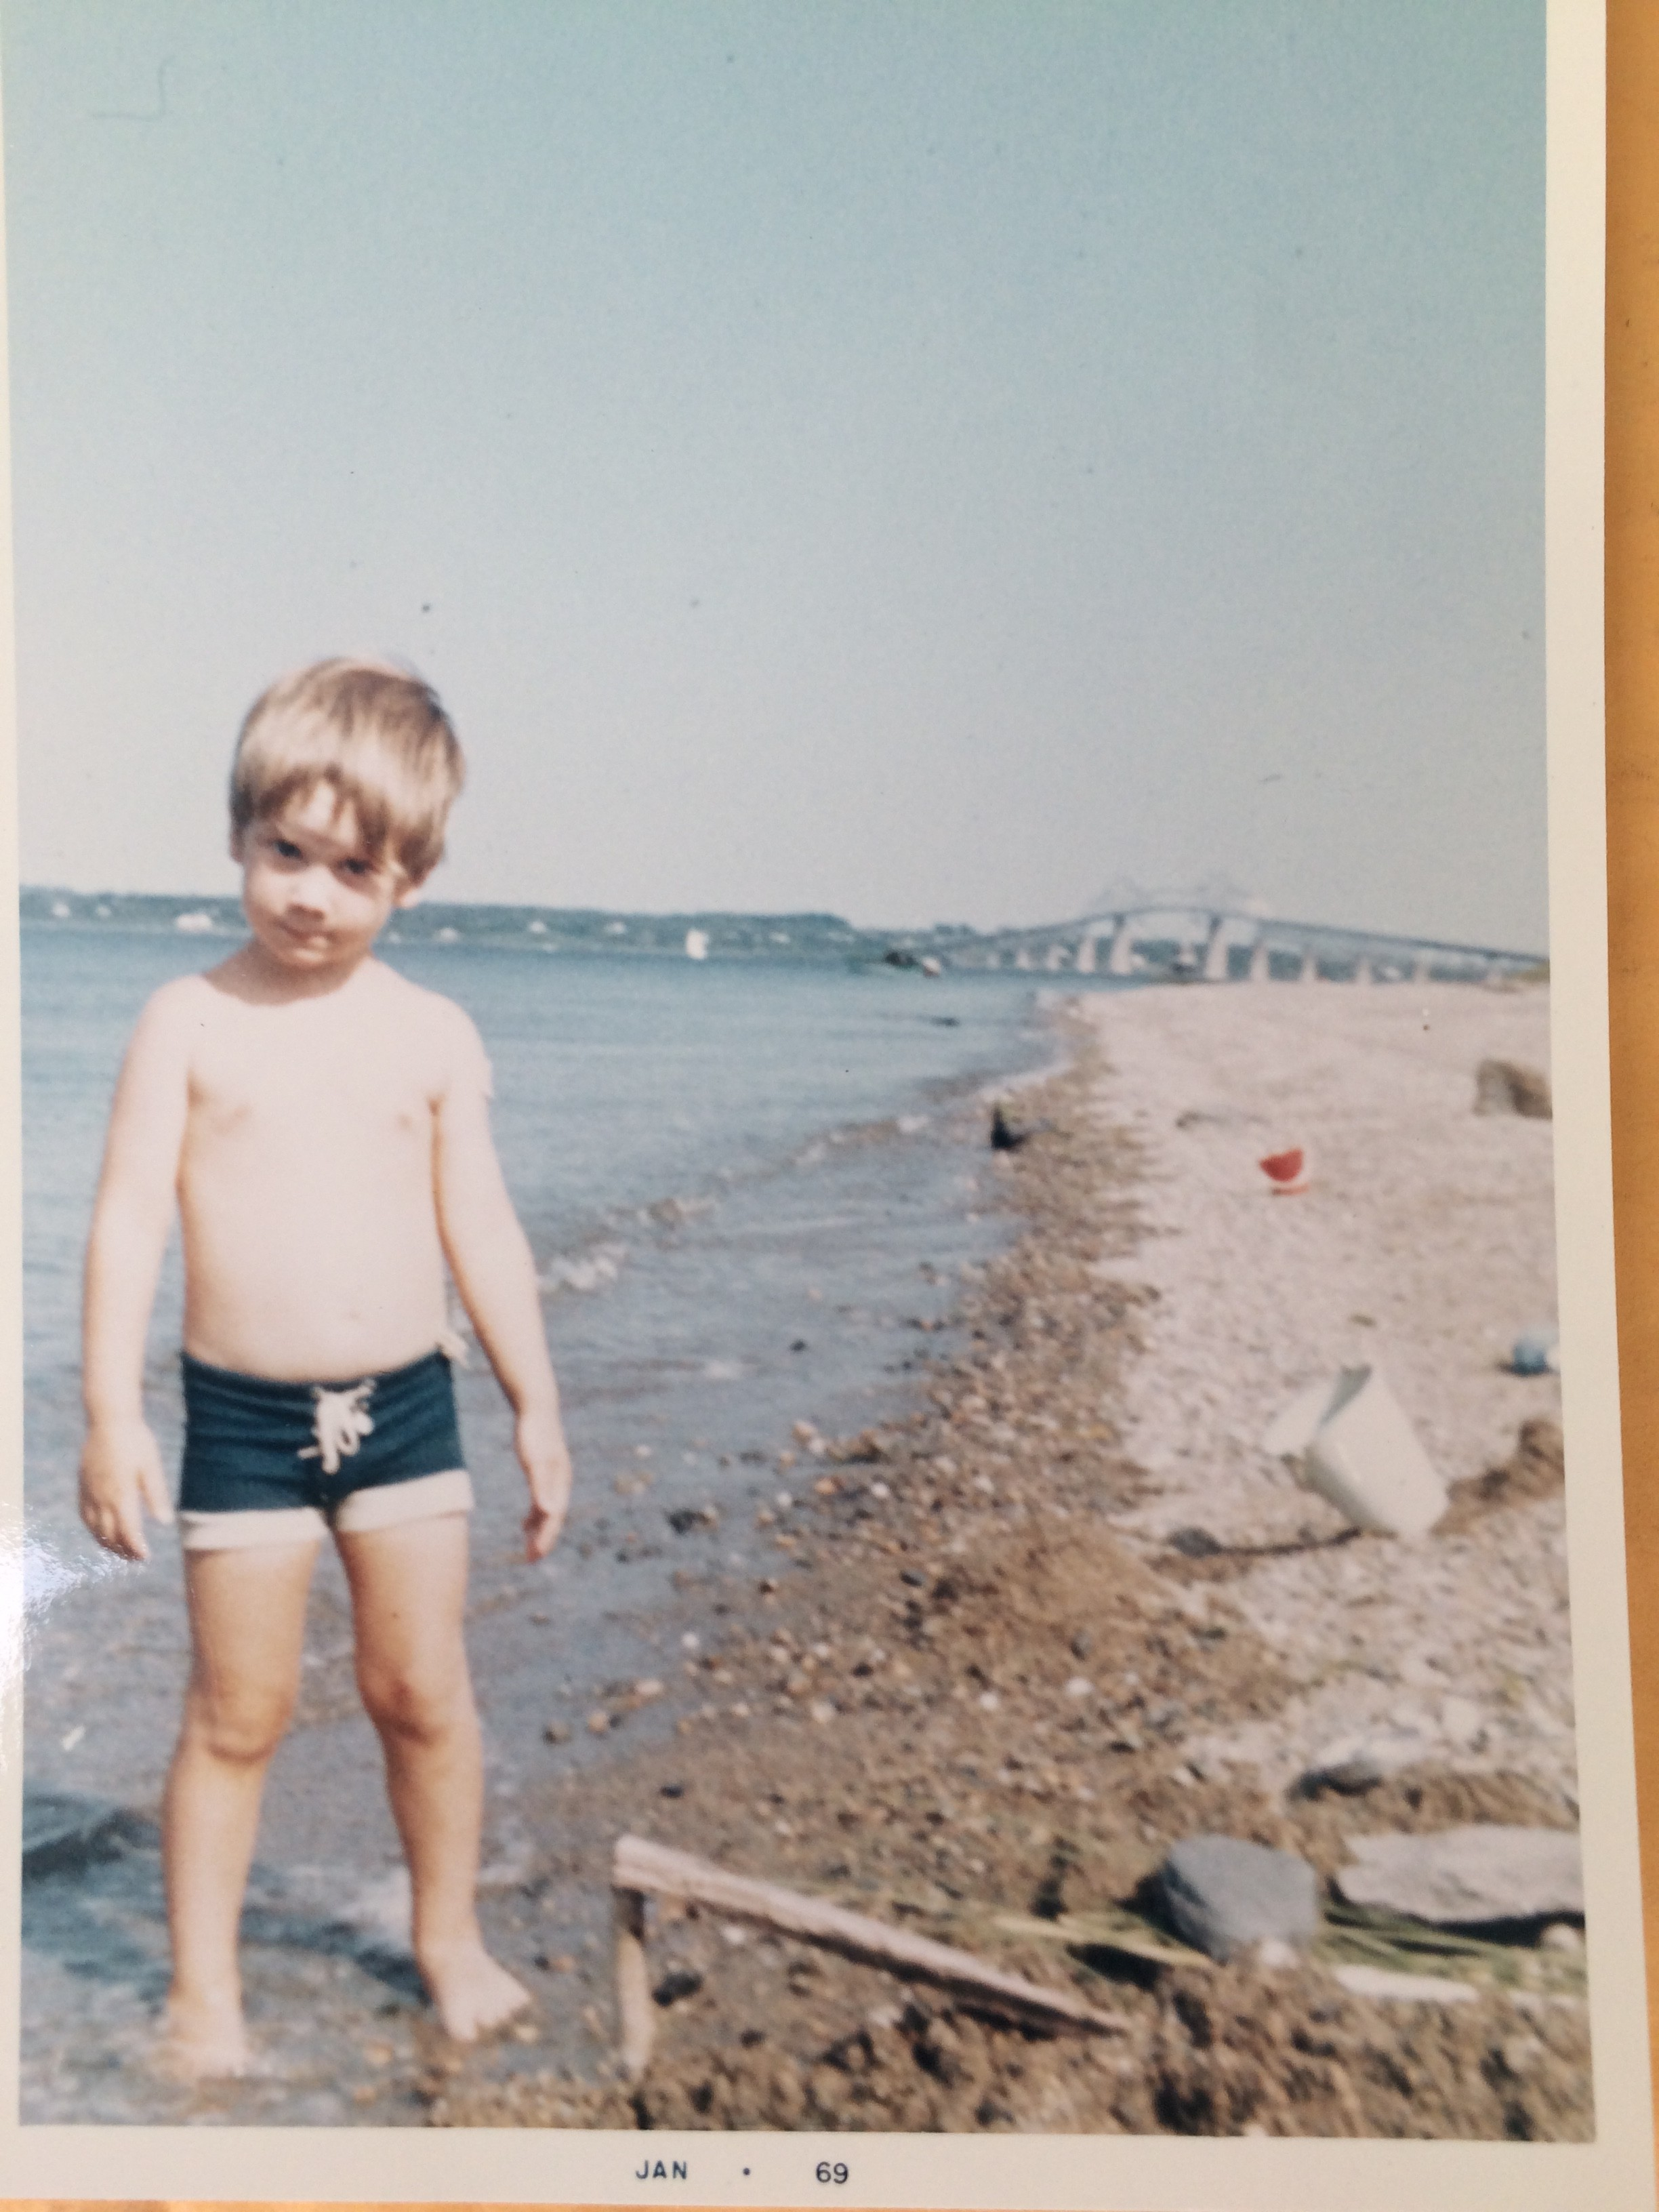 Justin on the beach, circa 1967